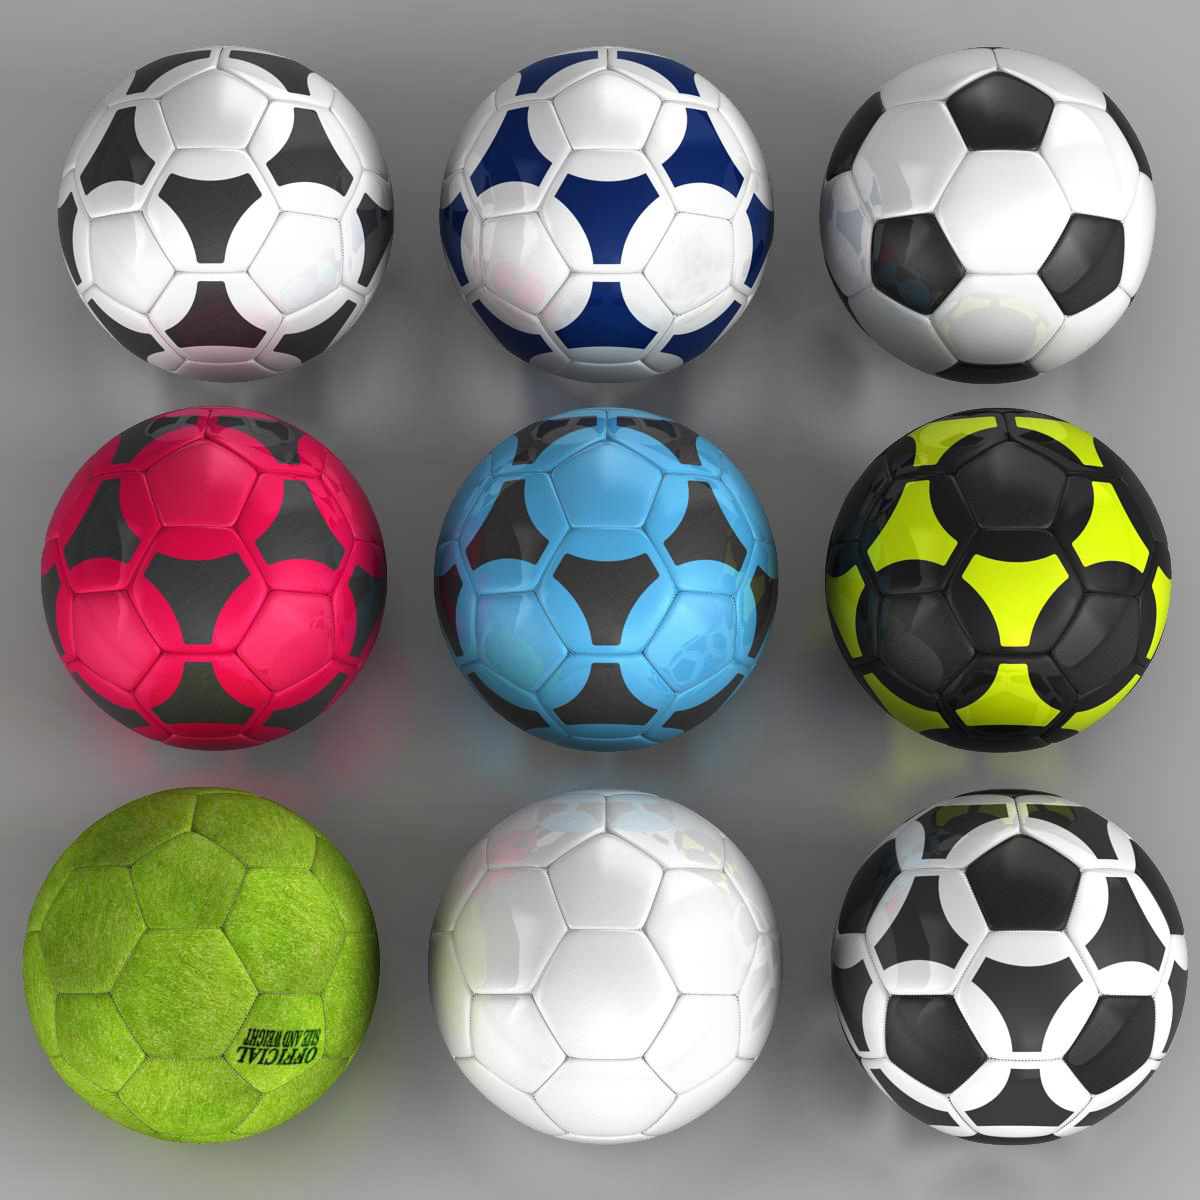 soccerball set 3d model 3ds max fbx c4d le m obj 205436